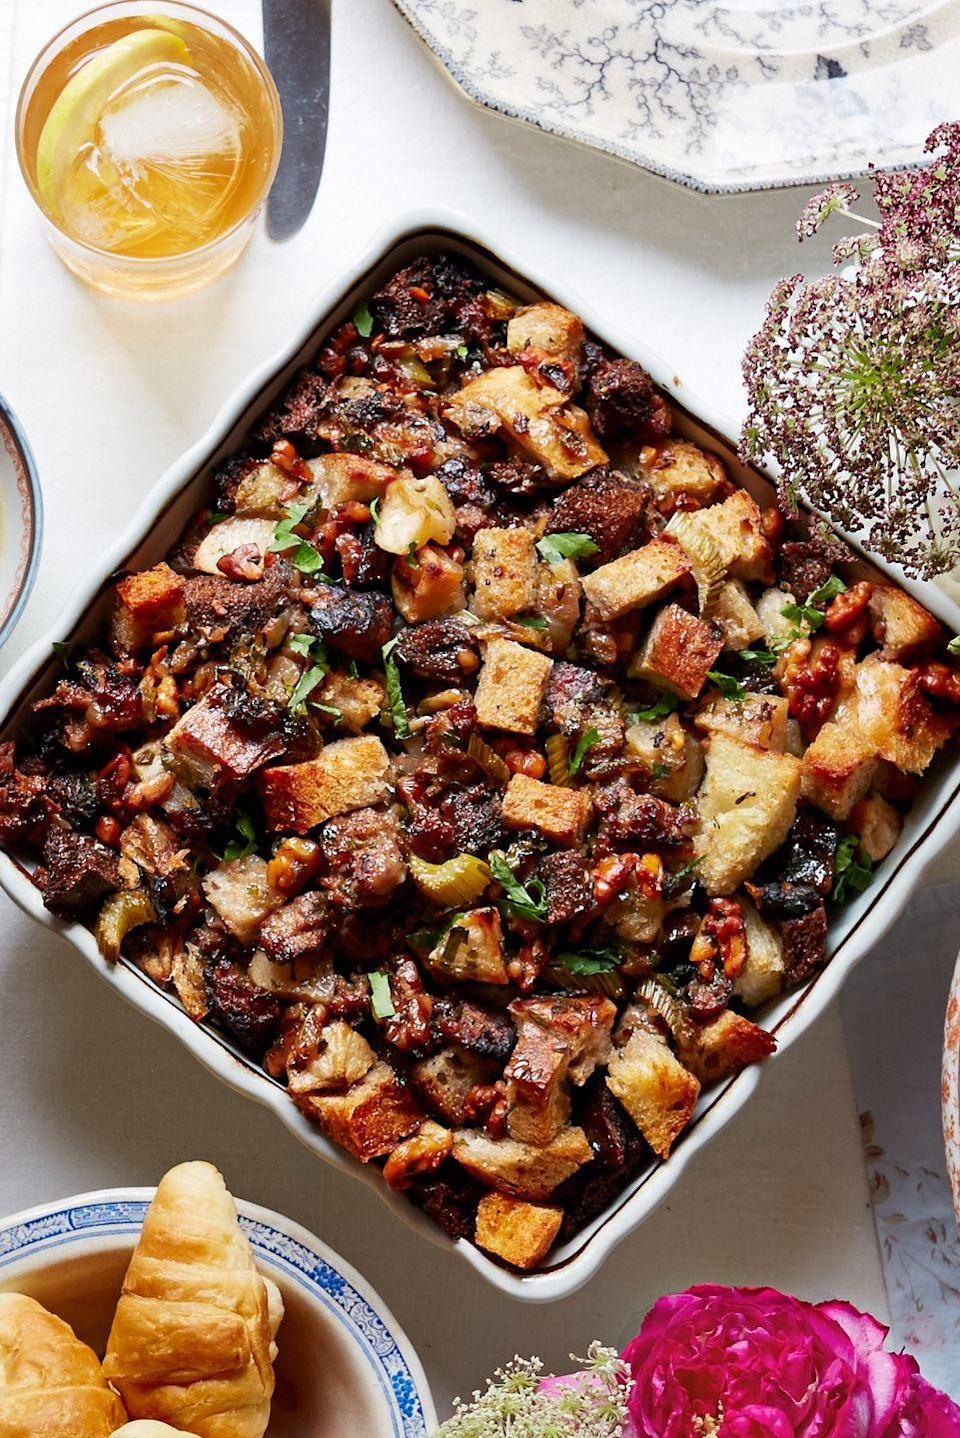 """<p>To make this stuffing really sing, use a few different kinds of artisanal bread and the best ground sausage you can find. You <em>could</em> halve the recipe, but stuffing makes great leftovers. </p><p><strong><a href=""""https://www.countryliving.com/food-drinks/recipes/a5271/apple-walnut-stuffing-recipe-clx1114/"""" rel=""""nofollow noopener"""" target=""""_blank"""" data-ylk=""""slk:Get the recipe"""" class=""""link rapid-noclick-resp"""">Get the recipe</a>.</strong></p><p><strong><a class=""""link rapid-noclick-resp"""" href=""""https://www.amazon.com/Victoria-Skillet-Seasoned-Flaxseed-Certified/dp/B01726HD72/?tag=syn-yahoo-20&ascsubtag=%5Bartid%7C10050.g.34645538%5Bsrc%7Cyahoo-us"""" rel=""""nofollow noopener"""" target=""""_blank"""" data-ylk=""""slk:SHOP SKILLETS"""">SHOP SKILLETS</a><br></strong></p>"""